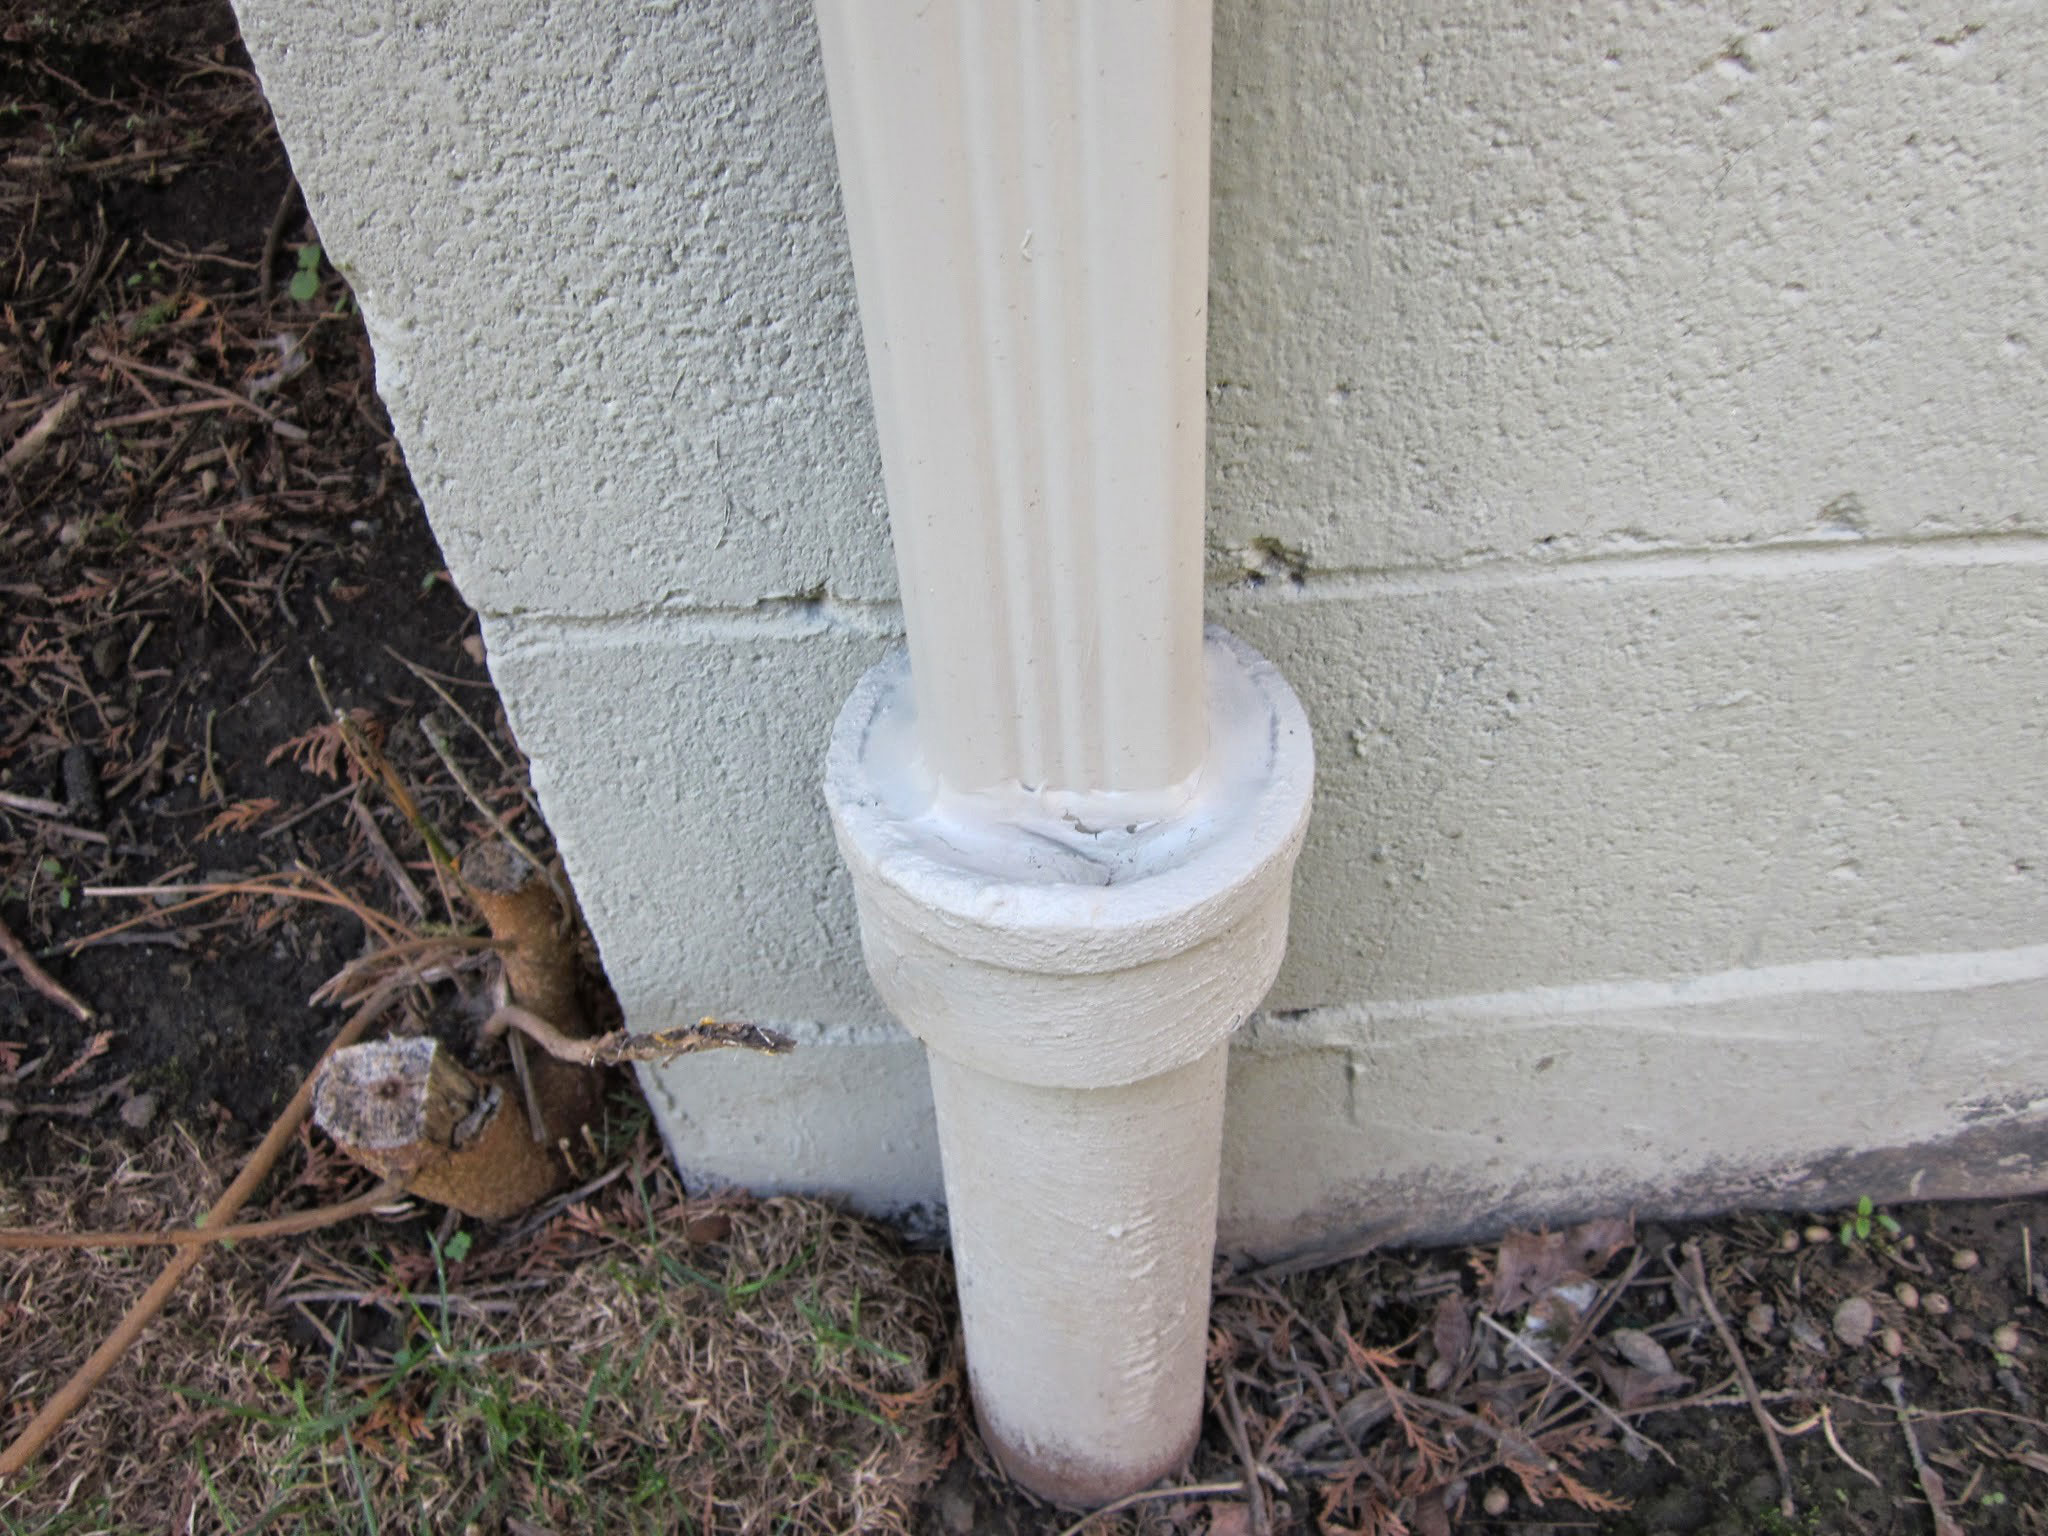 Completely new Downspout Disconnection from Storm Sewers - The Eavestrough Company AJ06